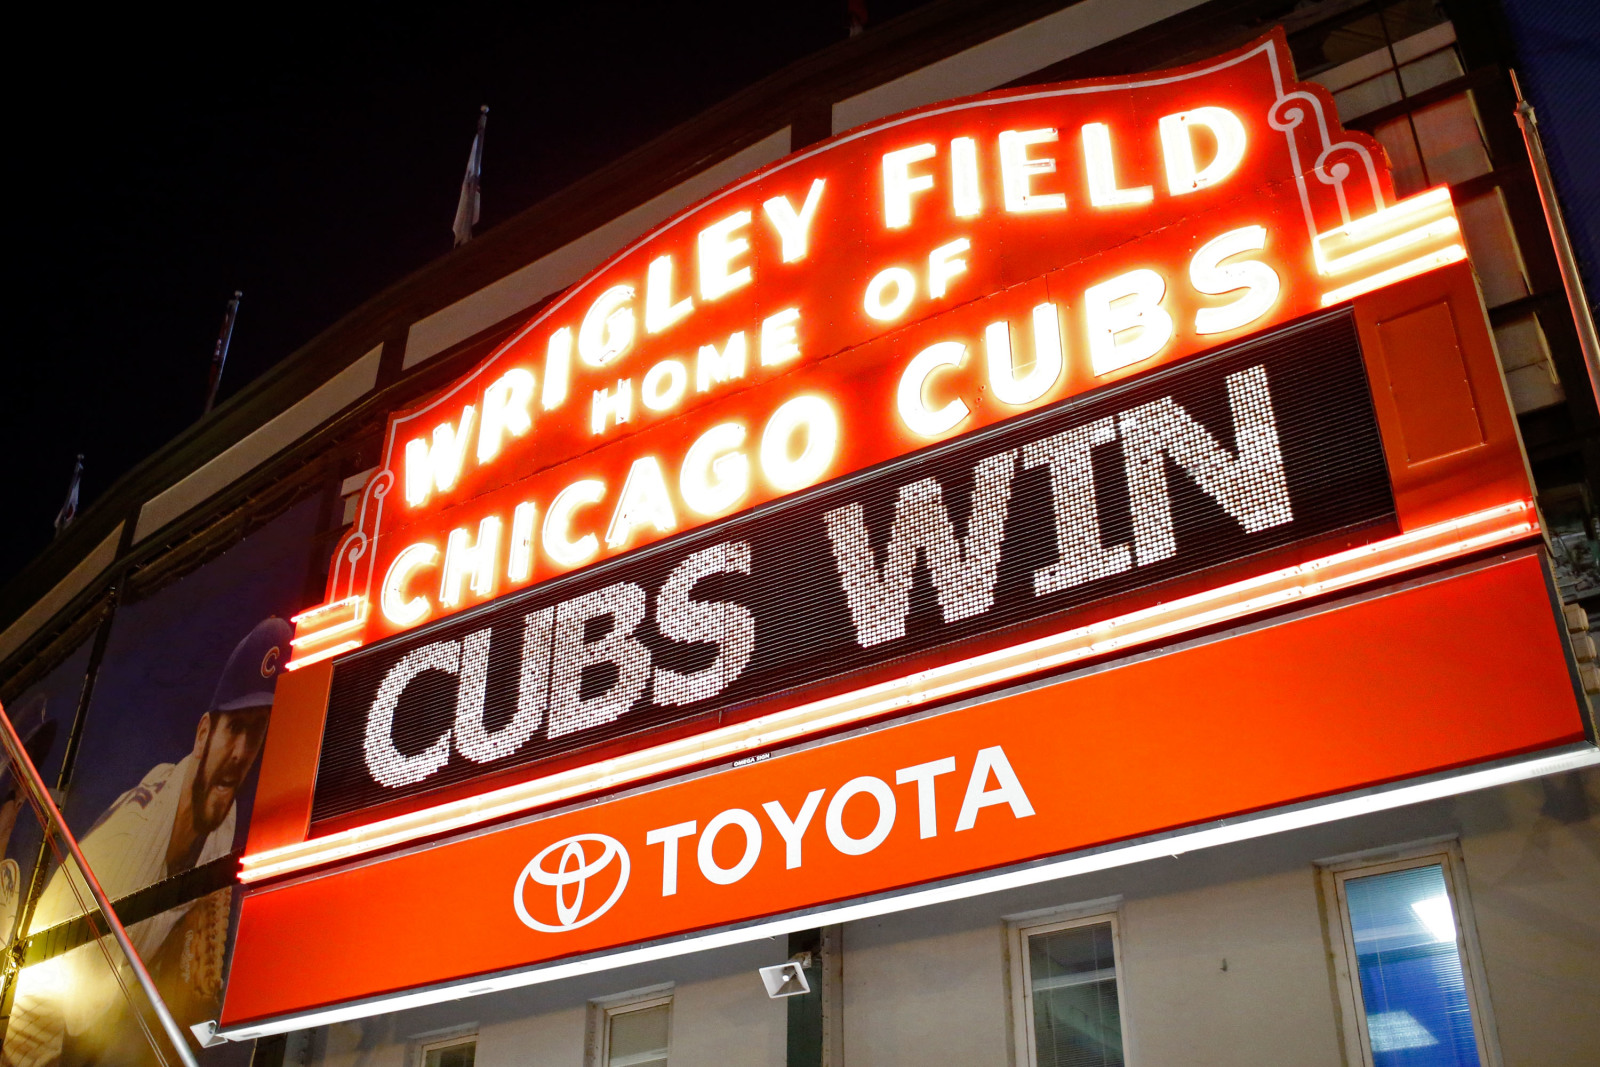 Chicago Cubs: Marquee Network signs deal with Hulu